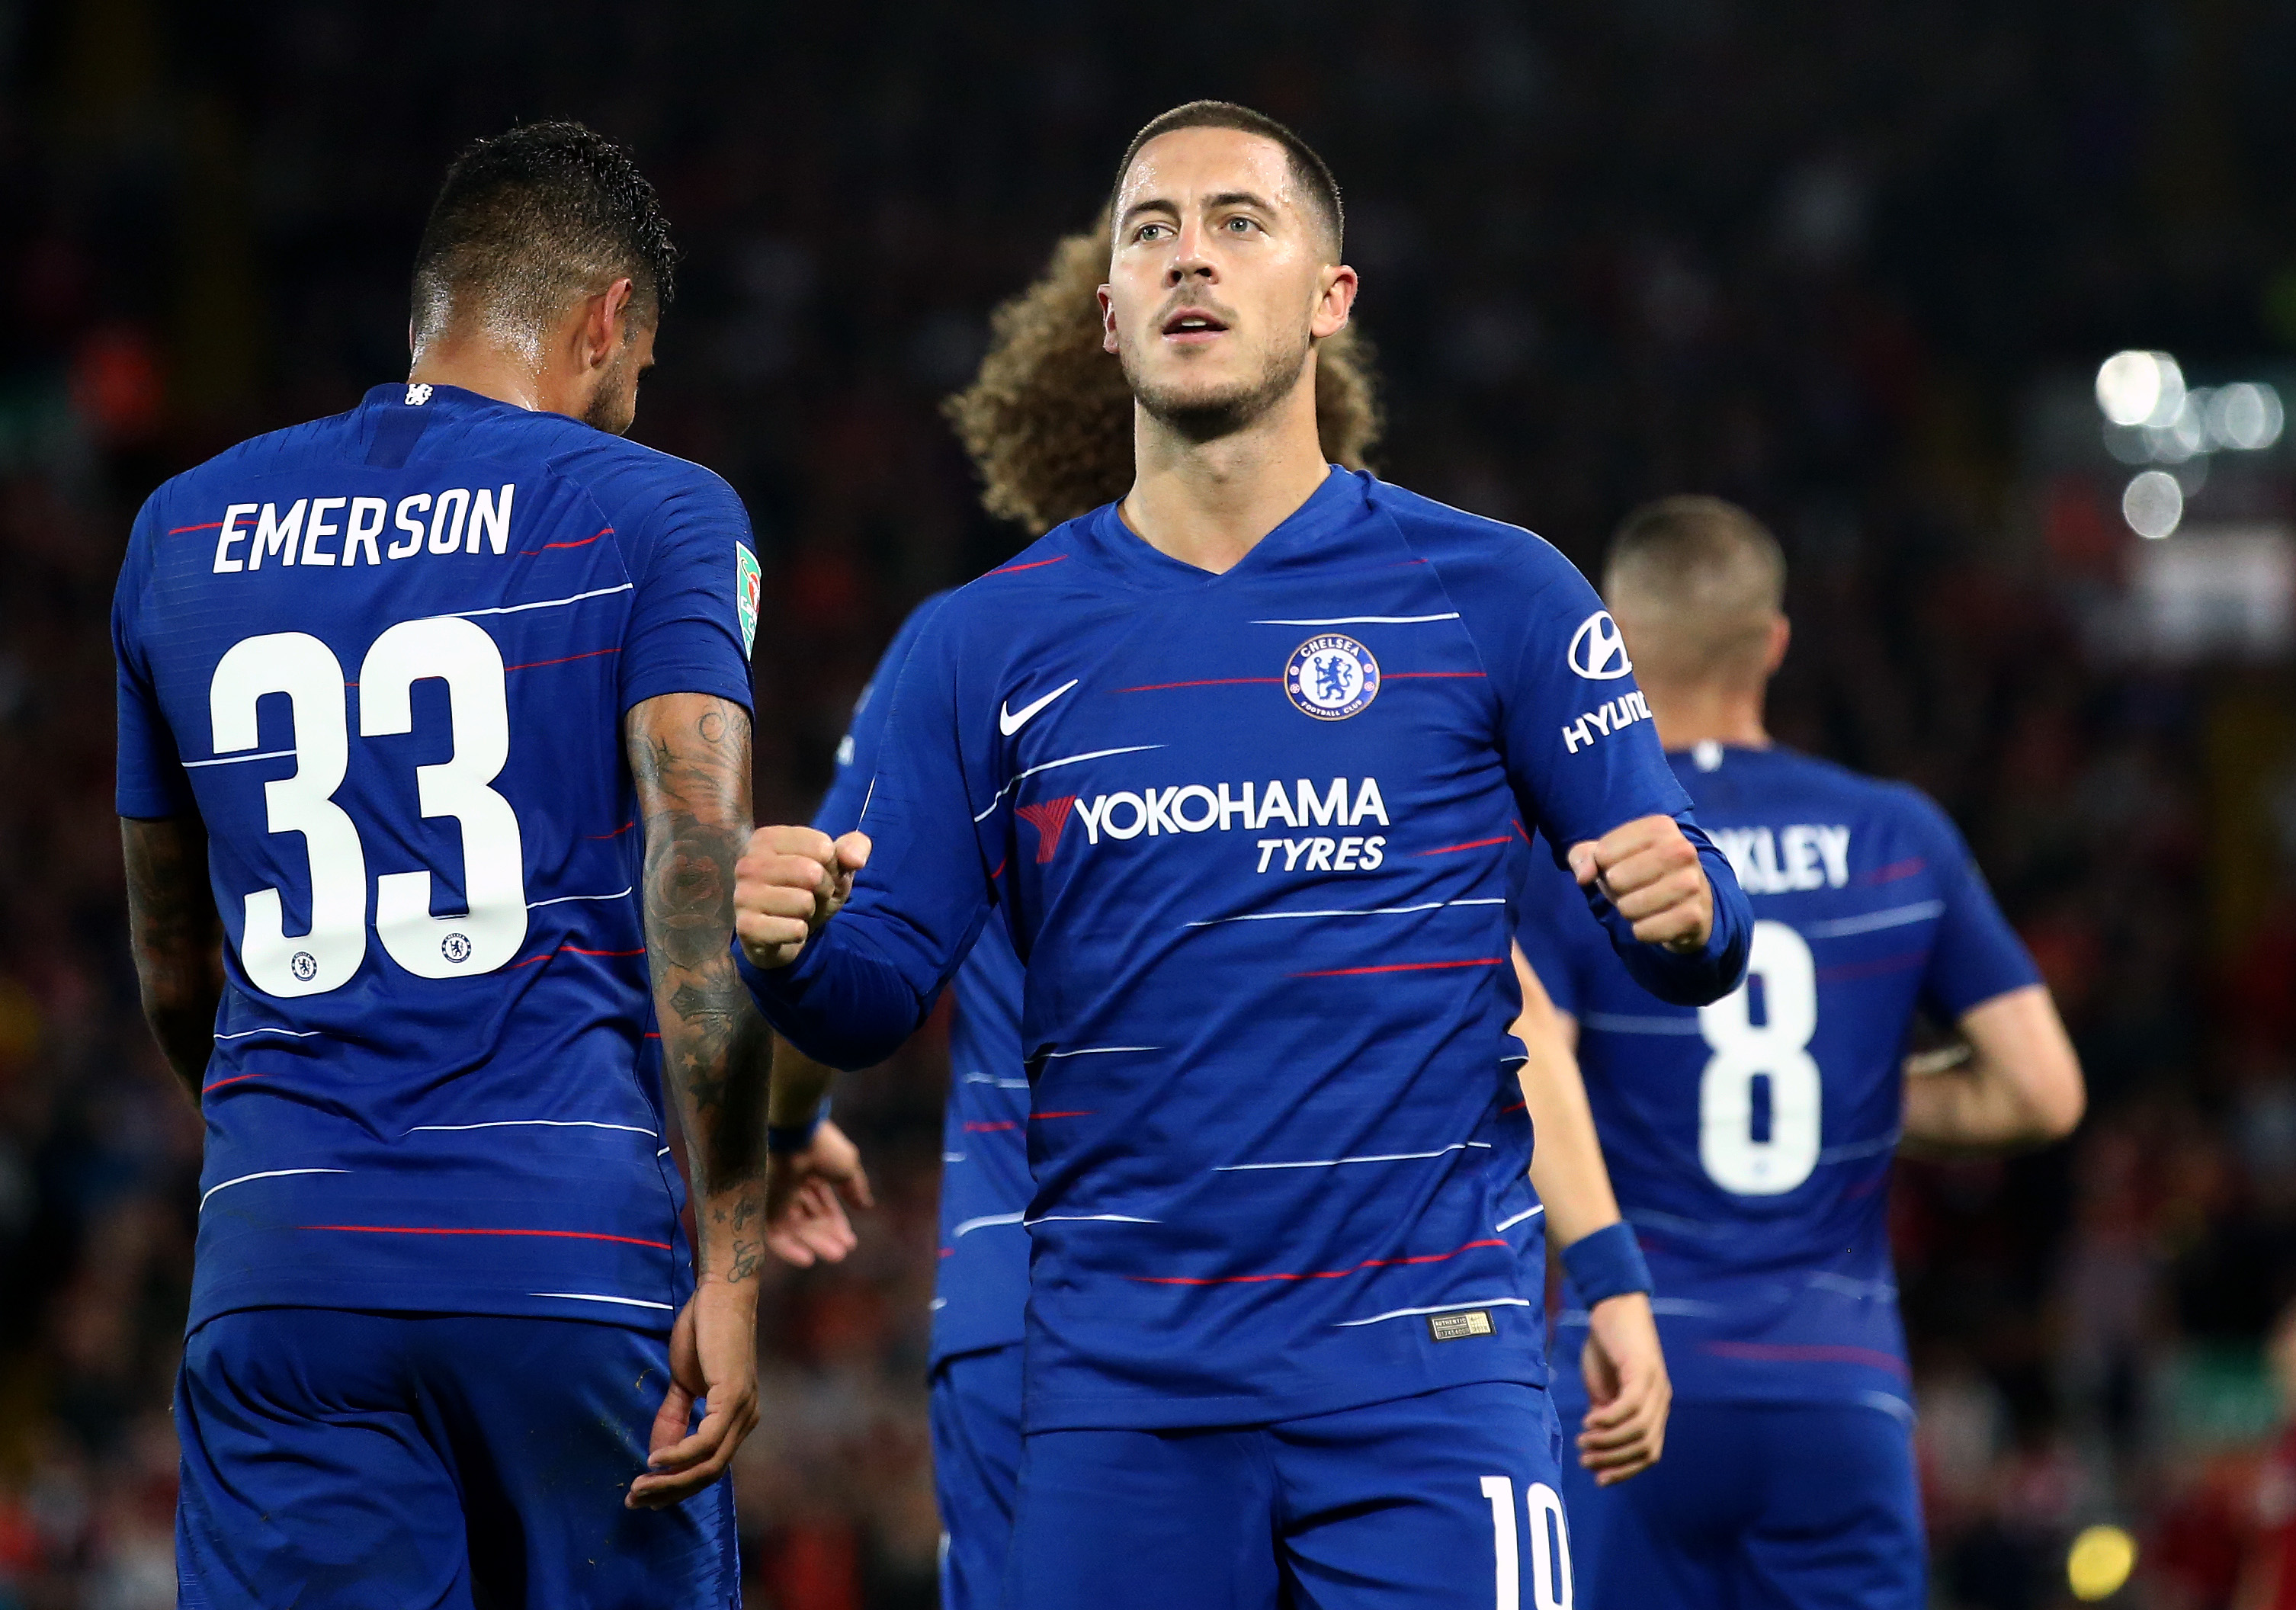 LIVERPOOL, ENGLAND - SEPTEMBER 26:  Eden Hazard of Chelsea celebrates after he scores his sides second goal during the Carabao Cup Third Round match between Liverpool and Chelsea at Anfield on September 26, 2018 in Liverpool, England.  (Photo by Jan Kruger/Getty Images)